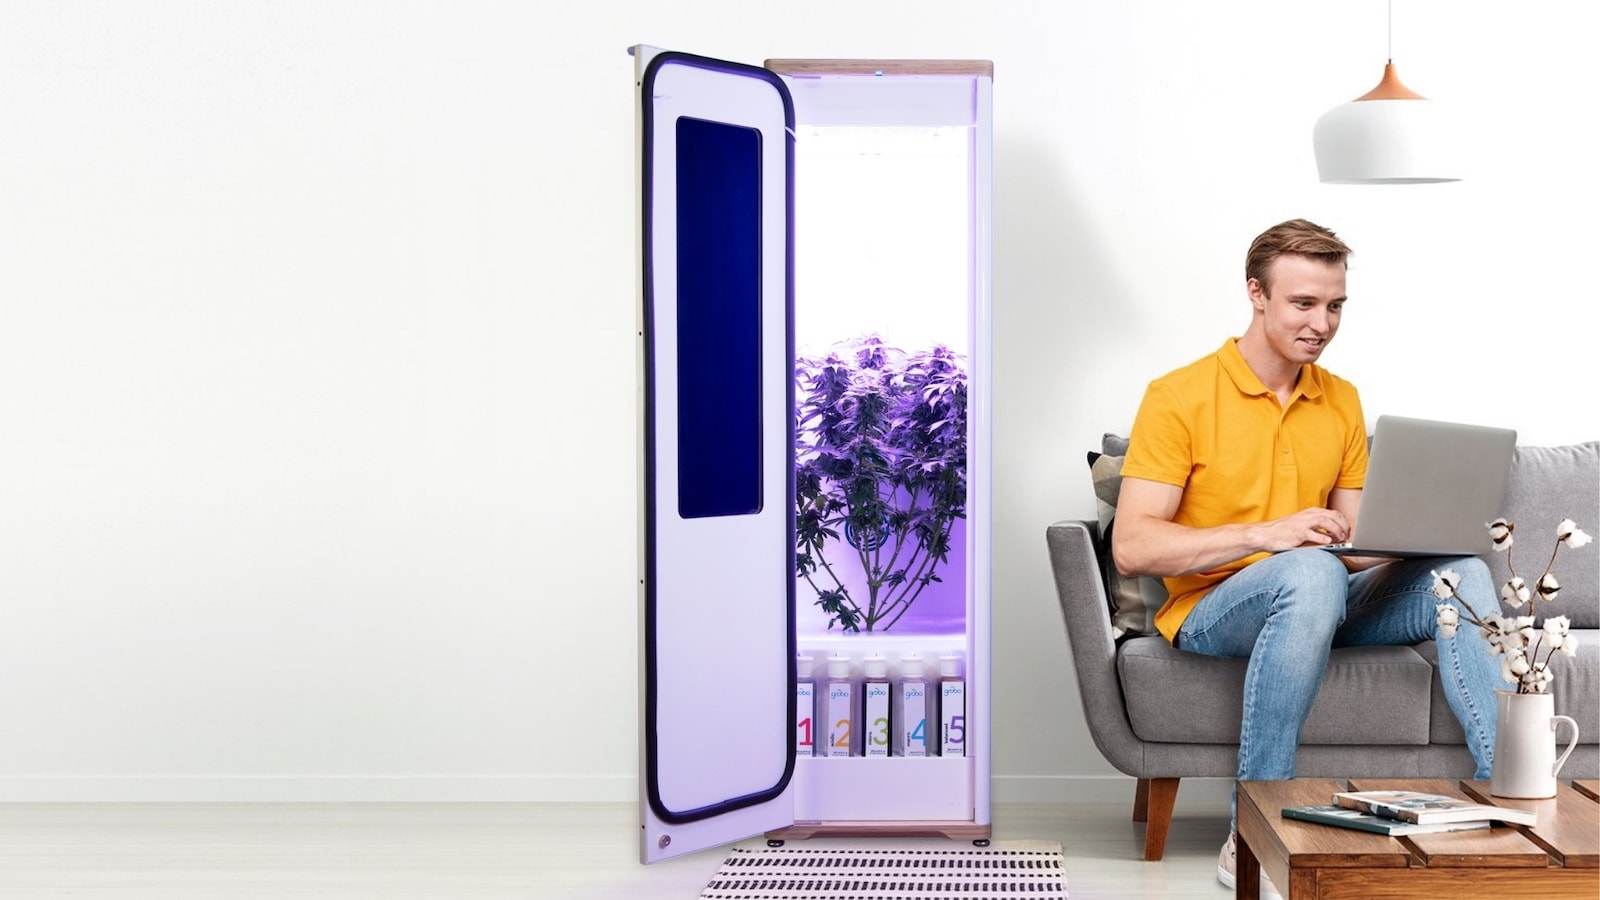 8 Smart garden gadgets for your home